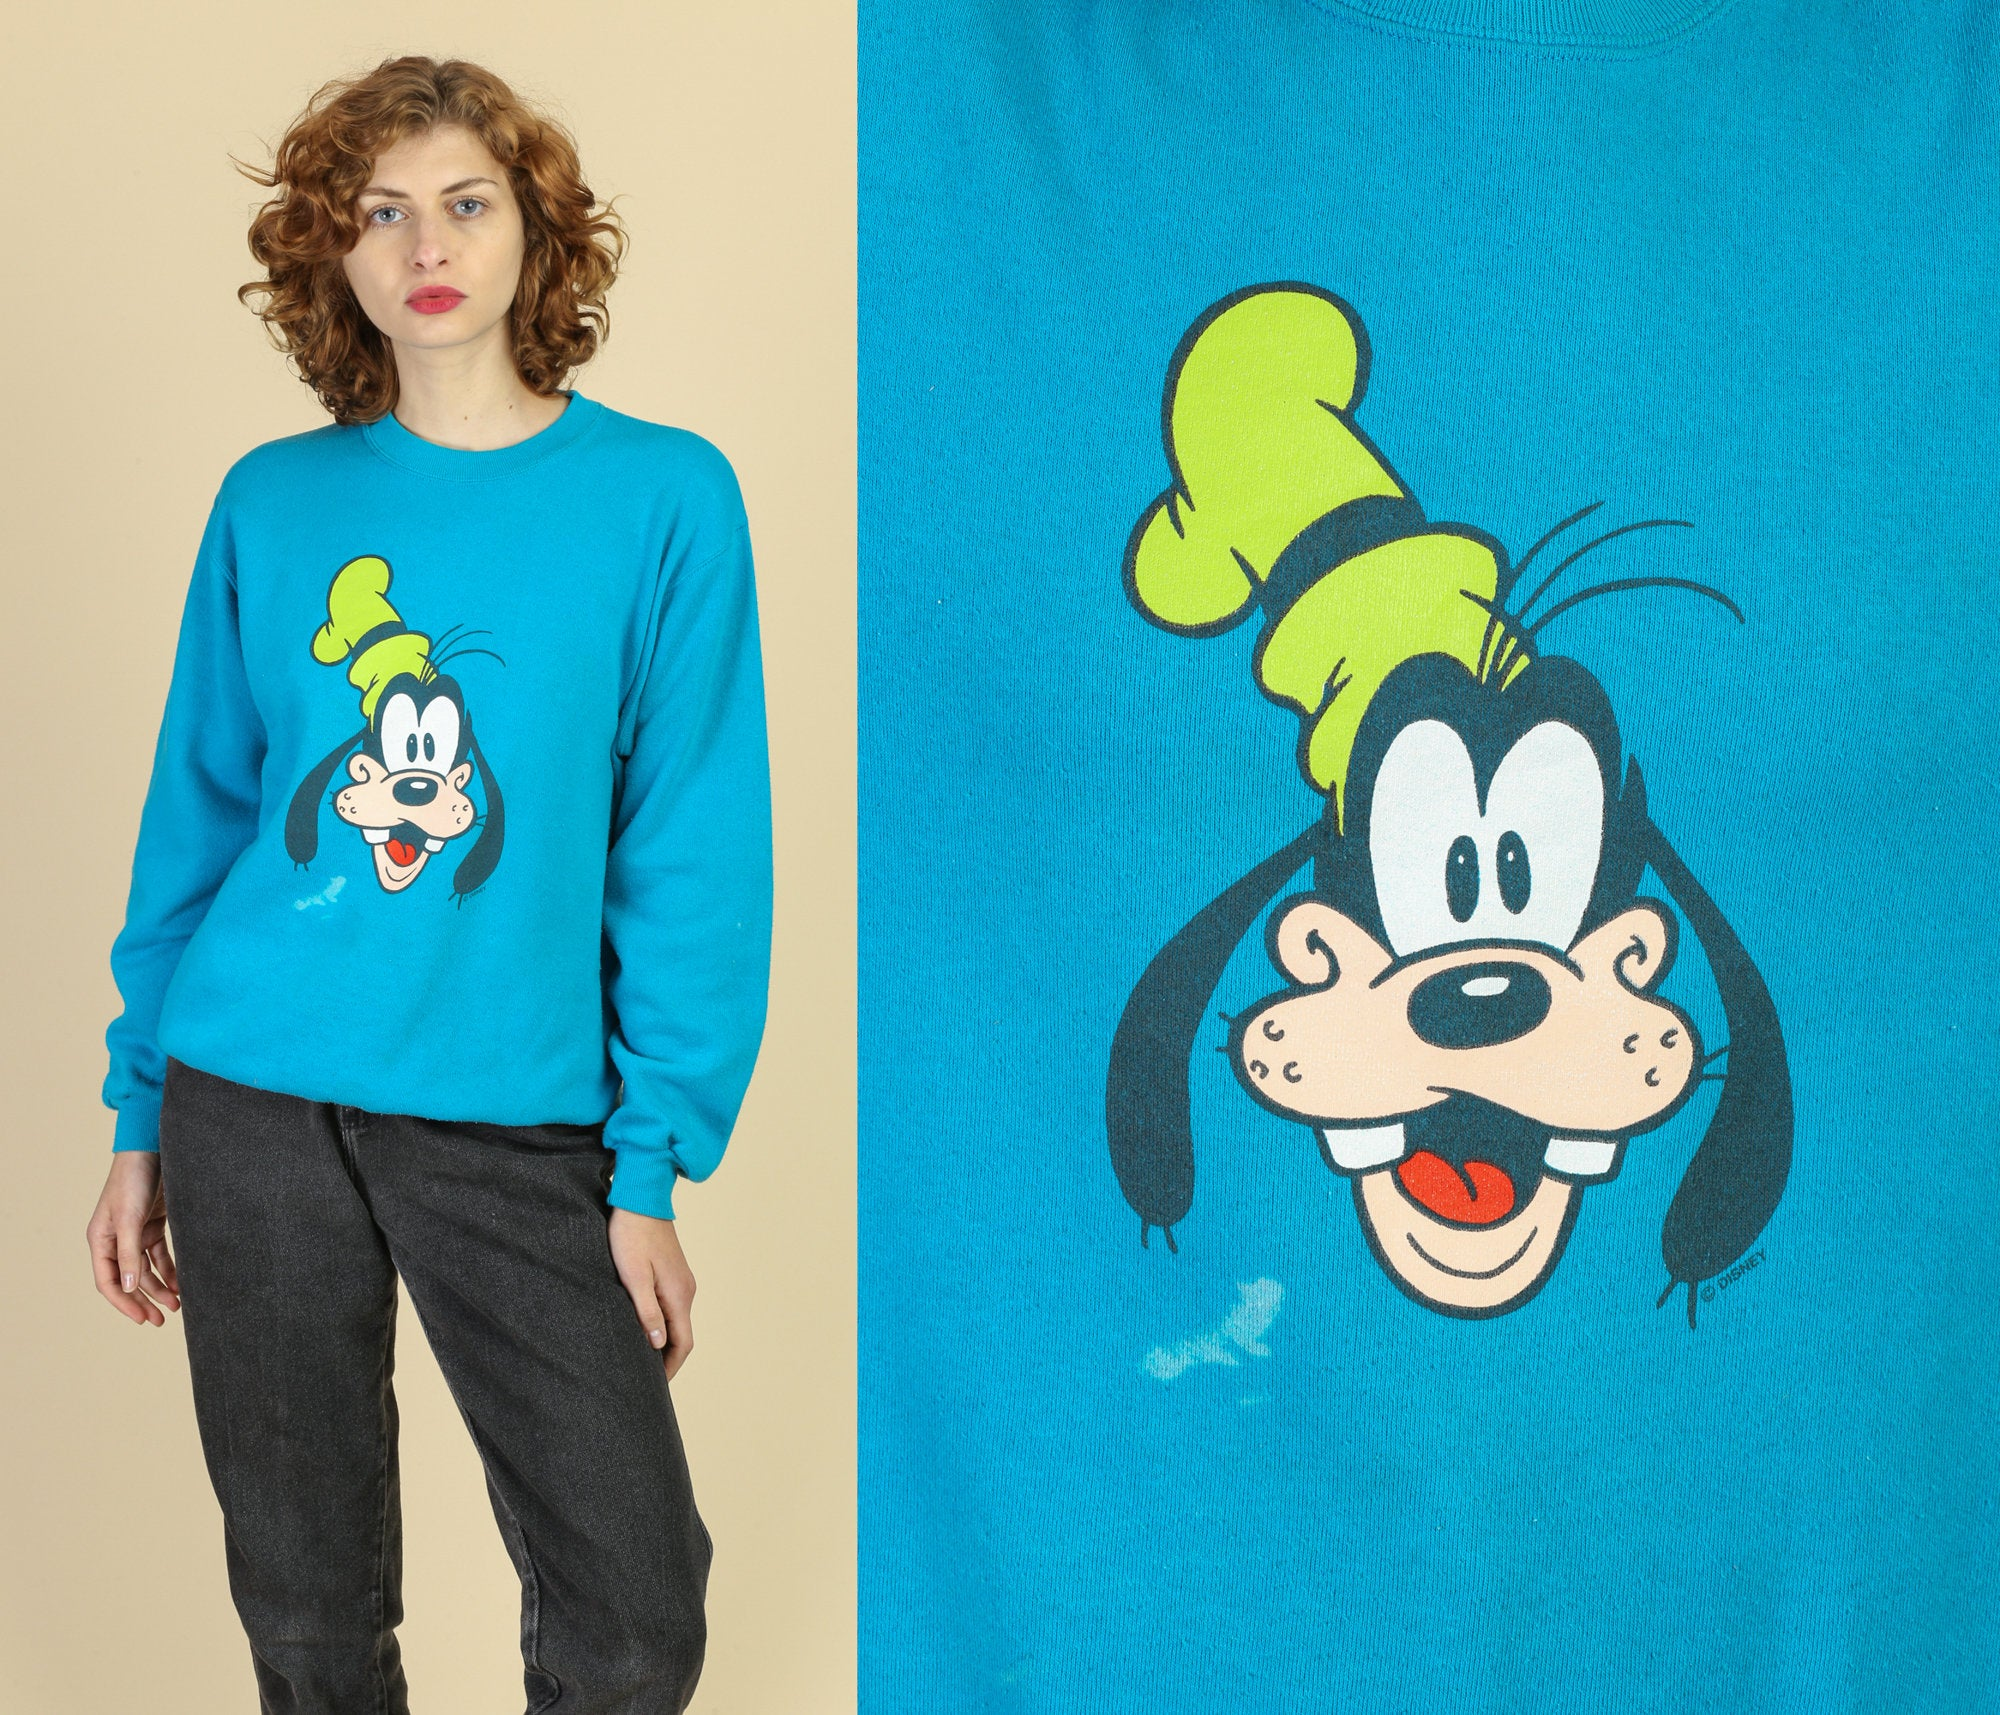 90s Goofy Cartoon Sweatshirt - Large